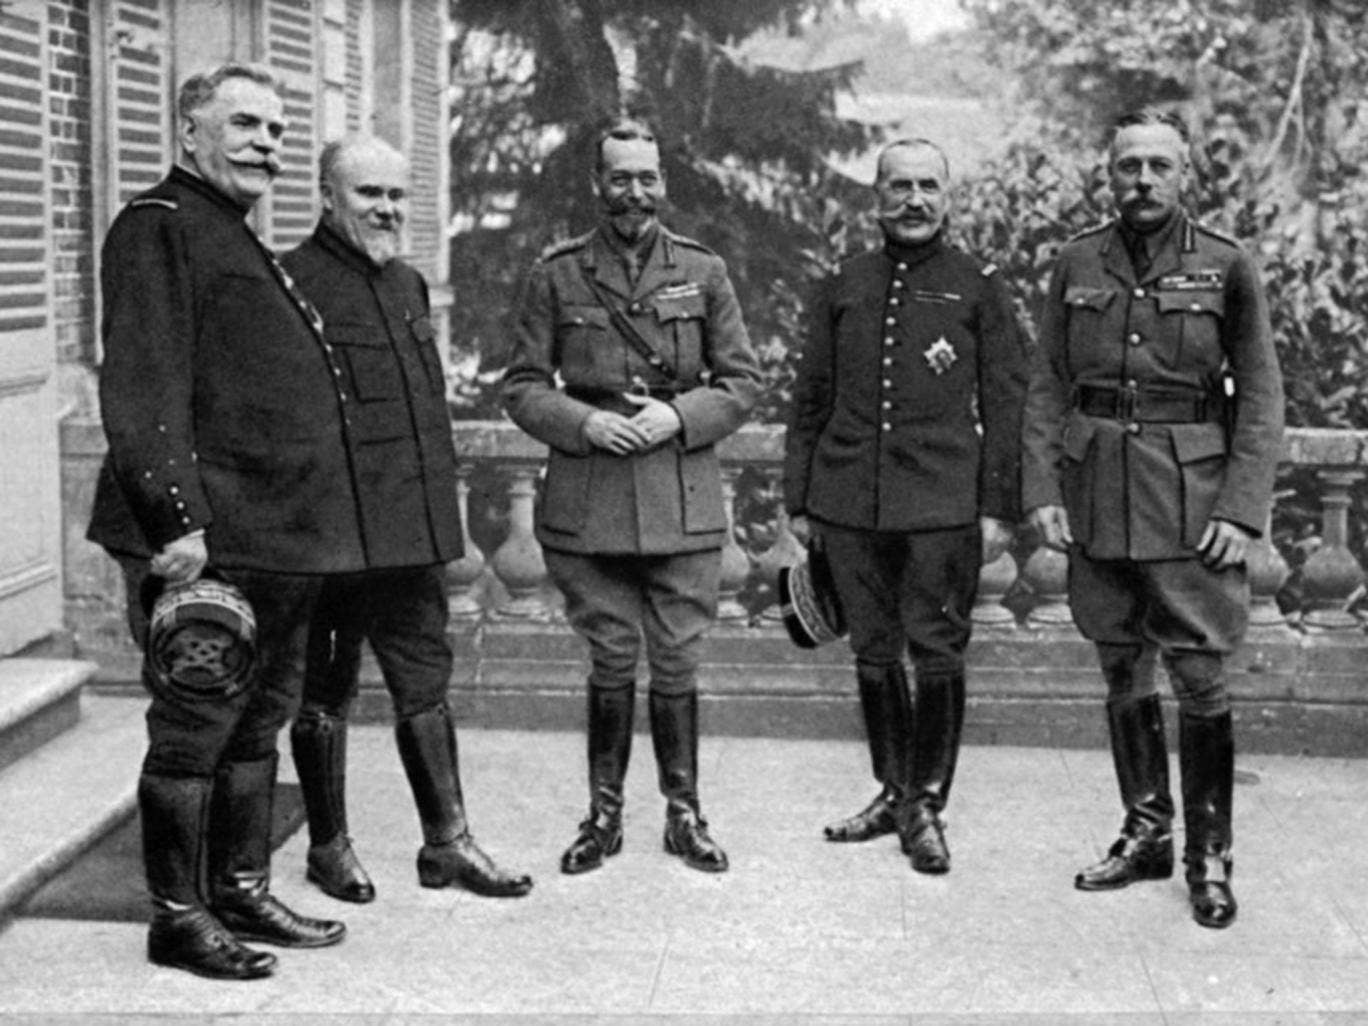 From left, Marshal Joffre, President Henri Poincaré, King George V, General Foch, and Field-Marshal Haig